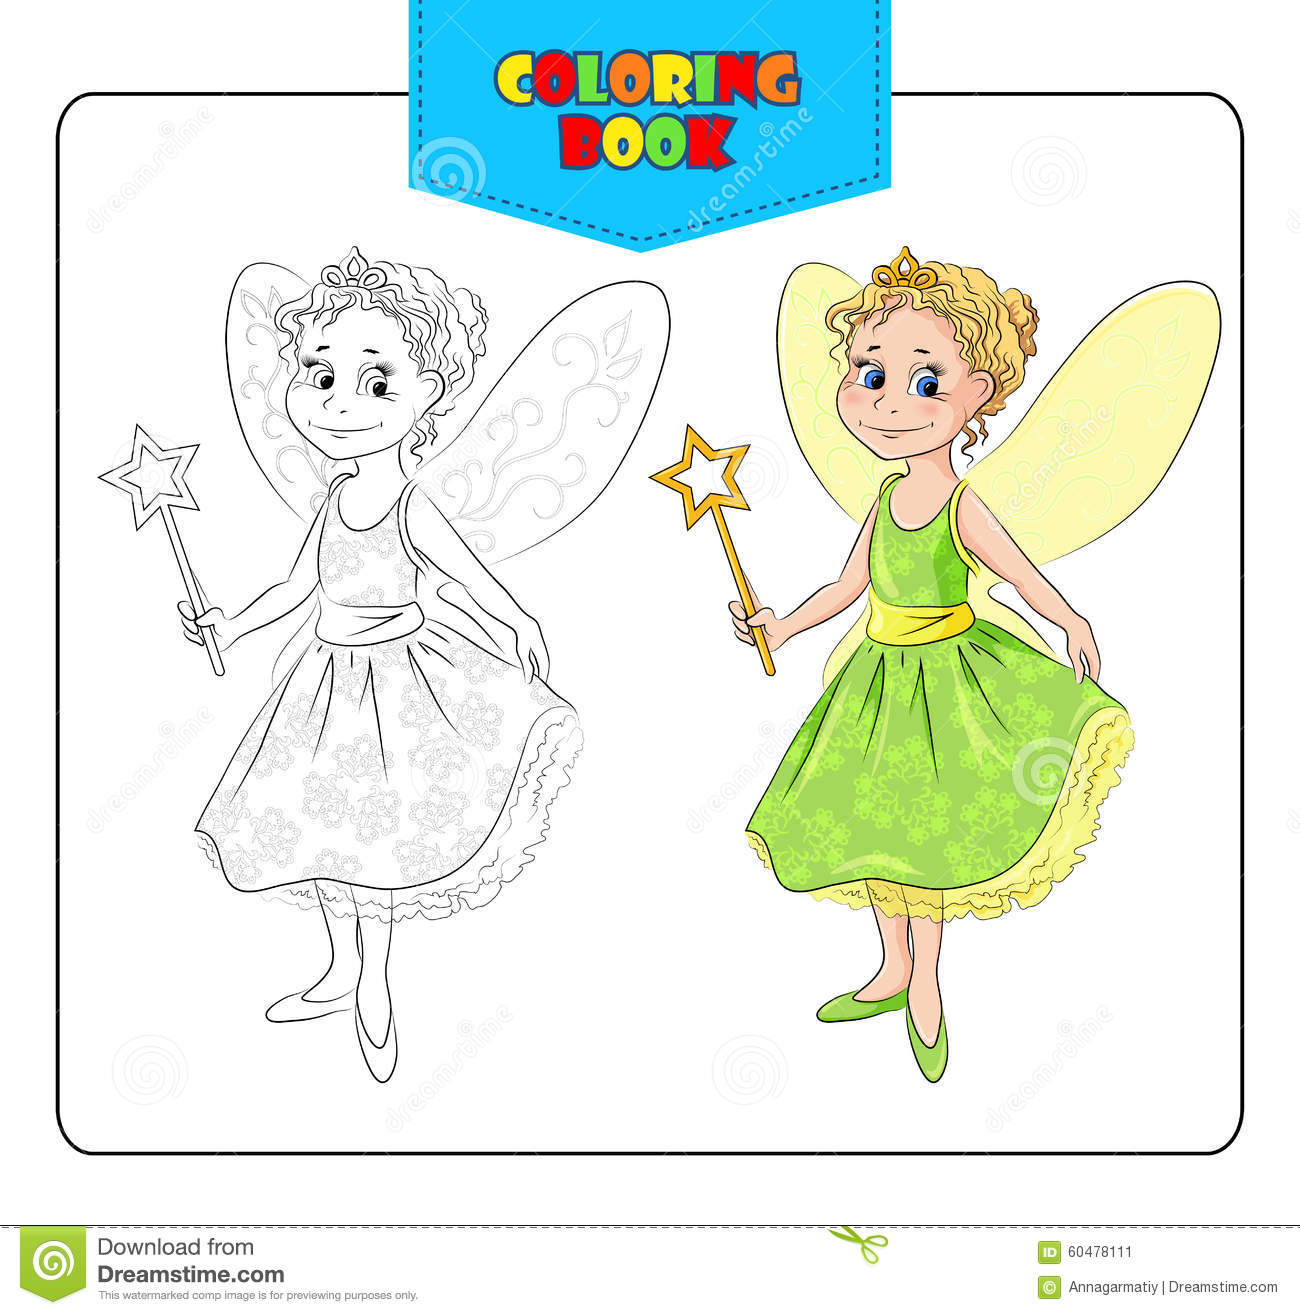 Book Carnival Cartoon Colored Coloring Costume Dress Fairy Fancy